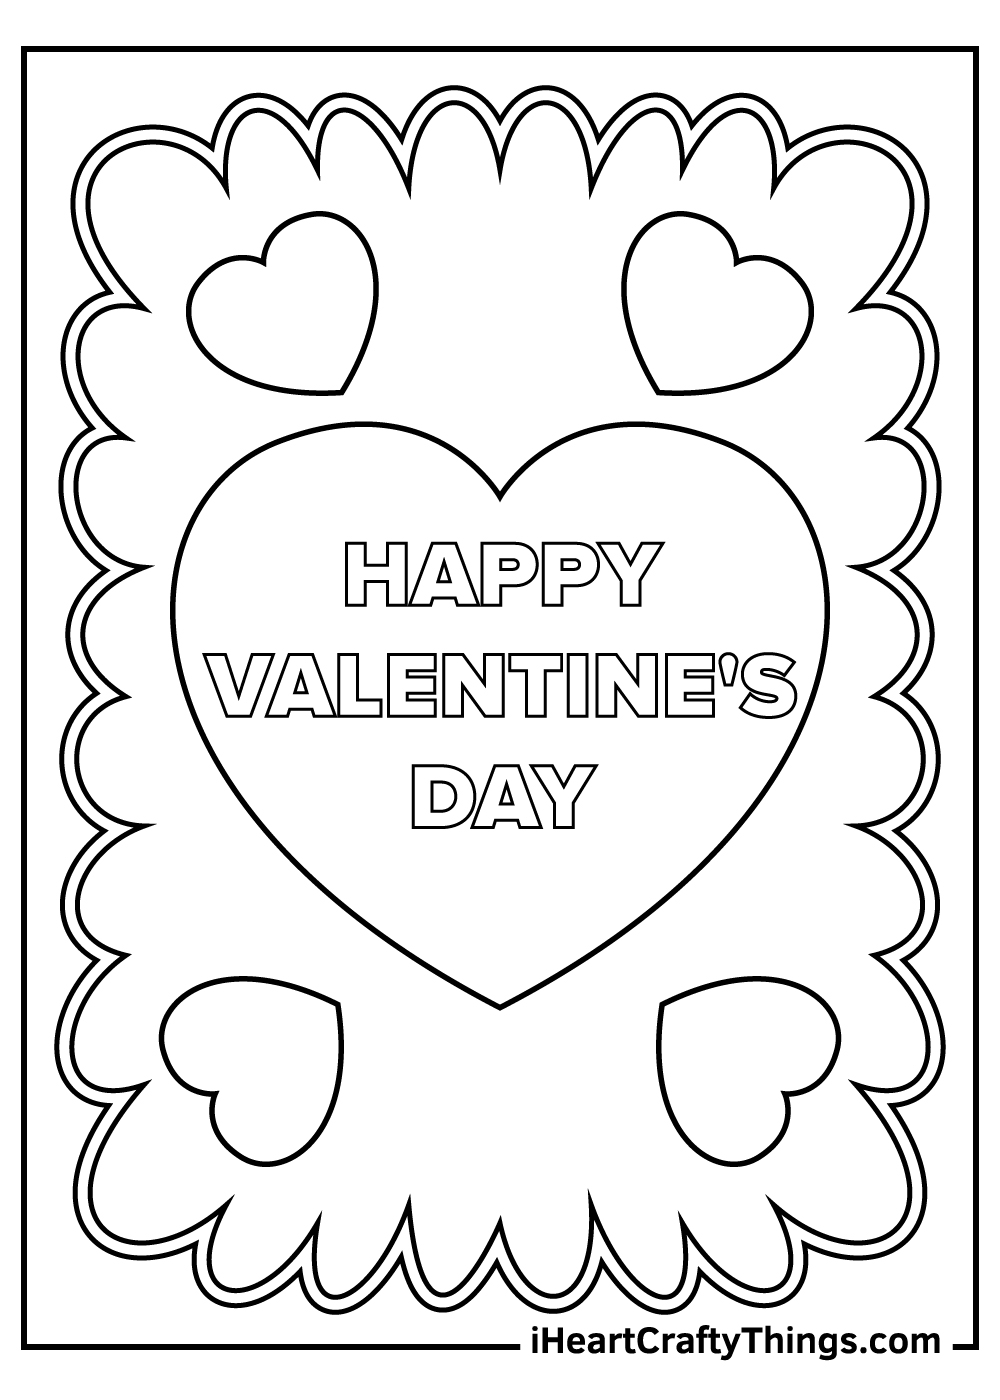 free valentine's coloring pages